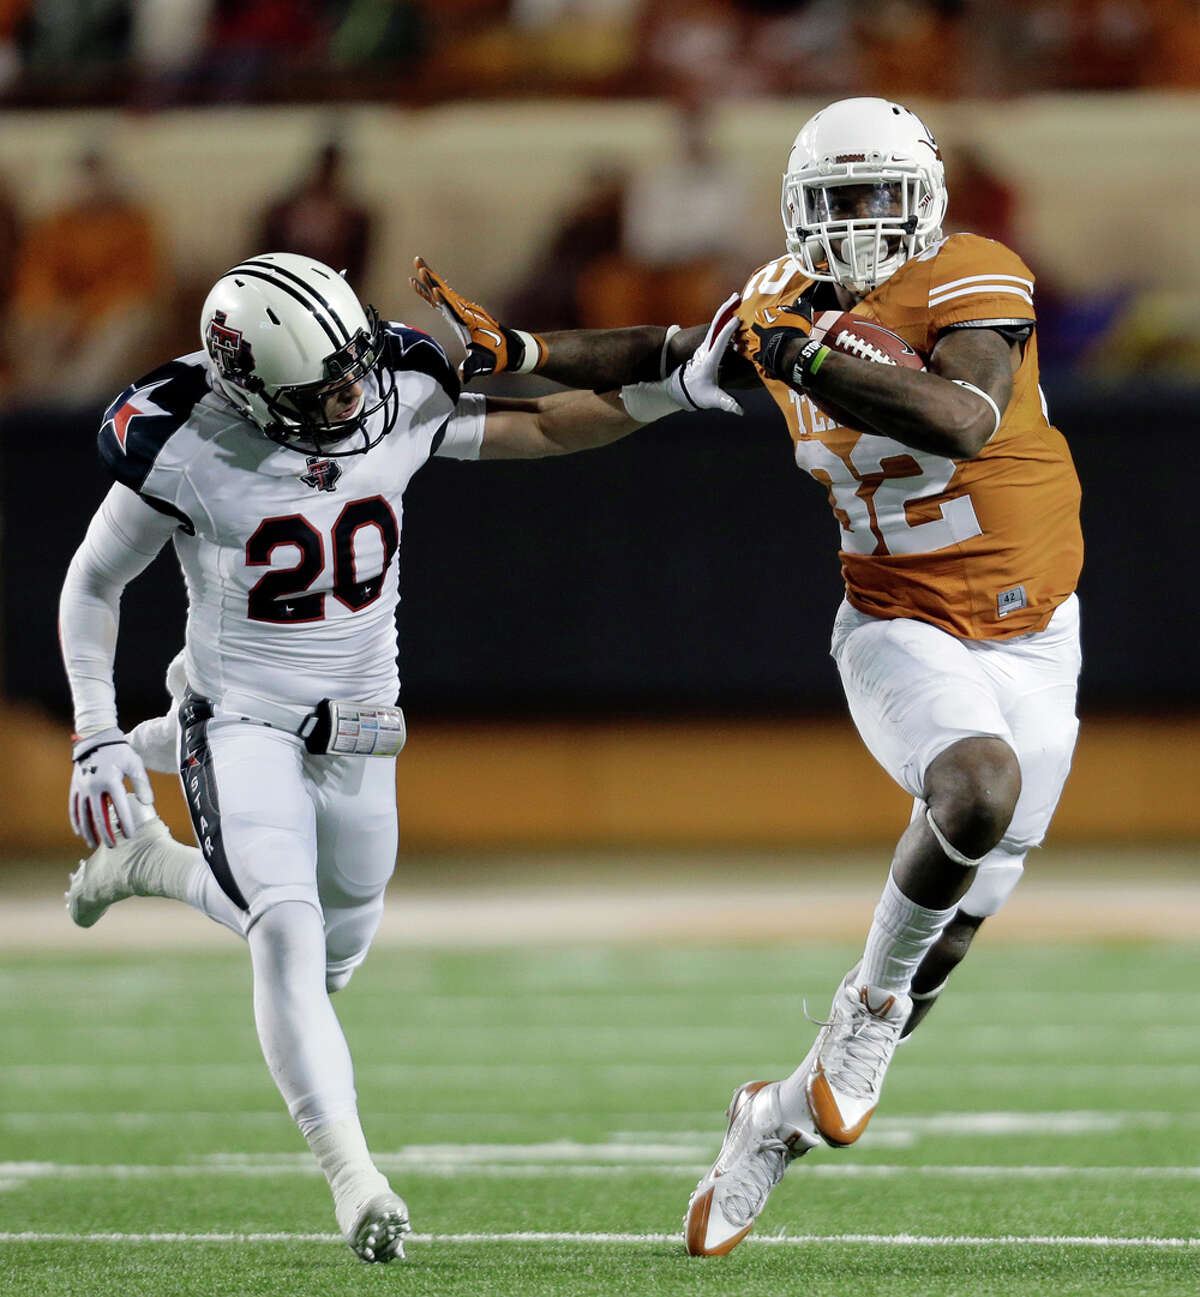 Texas' Johnathan Gray (32) runs past Texas Tech defender Tanner Jacobson (20) during the first half of an NCAA college football game Thursday, Nov. 28, 2013, in Austin, Texas. (AP Photo/Eric Gay)